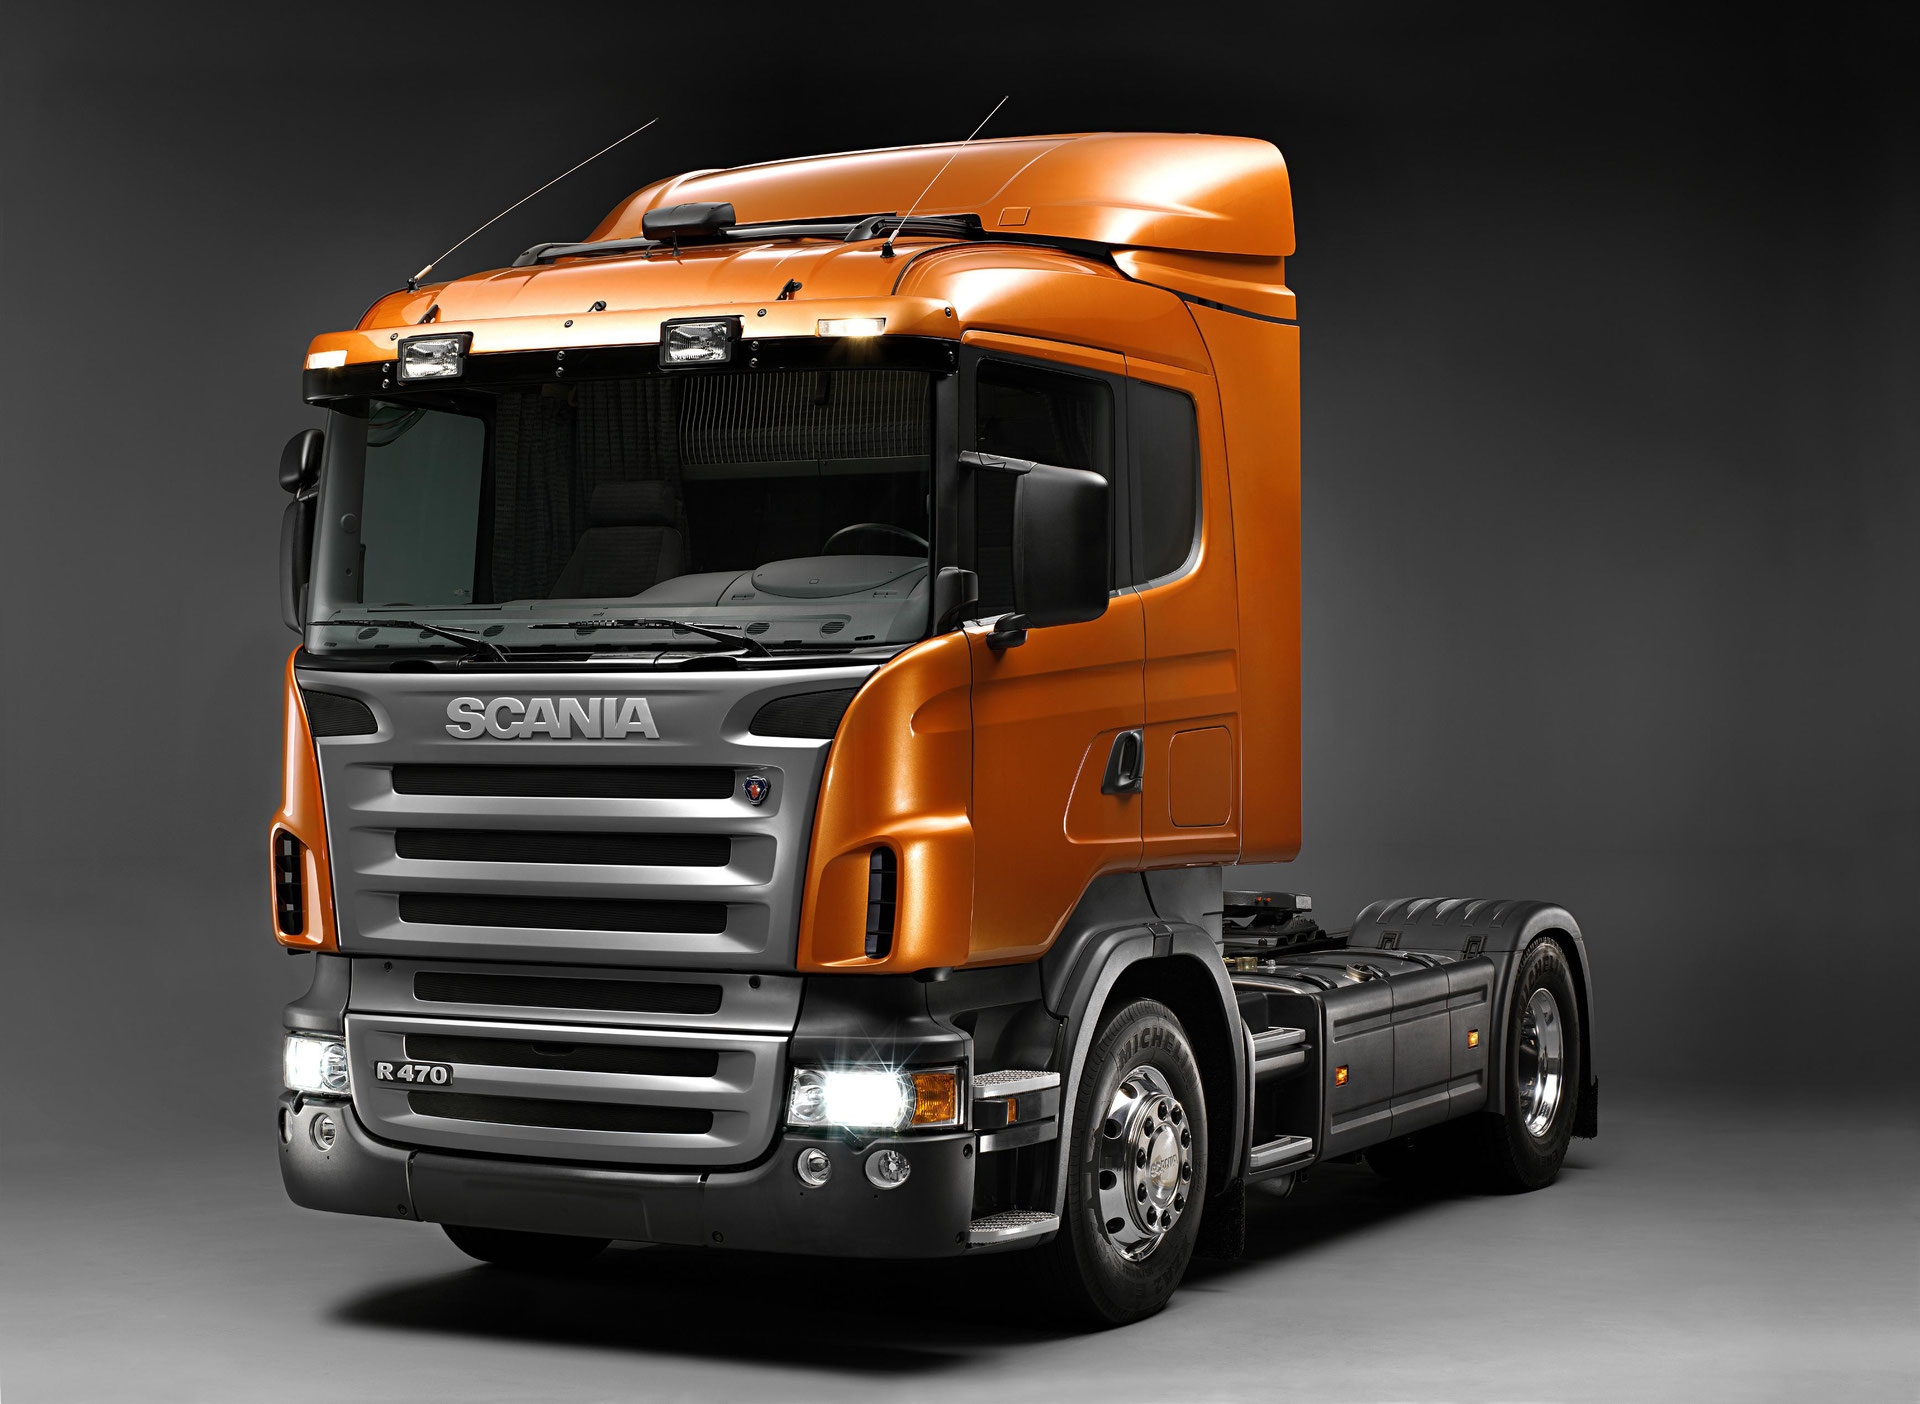 180 Scania Trucks Service Manuals Free Download